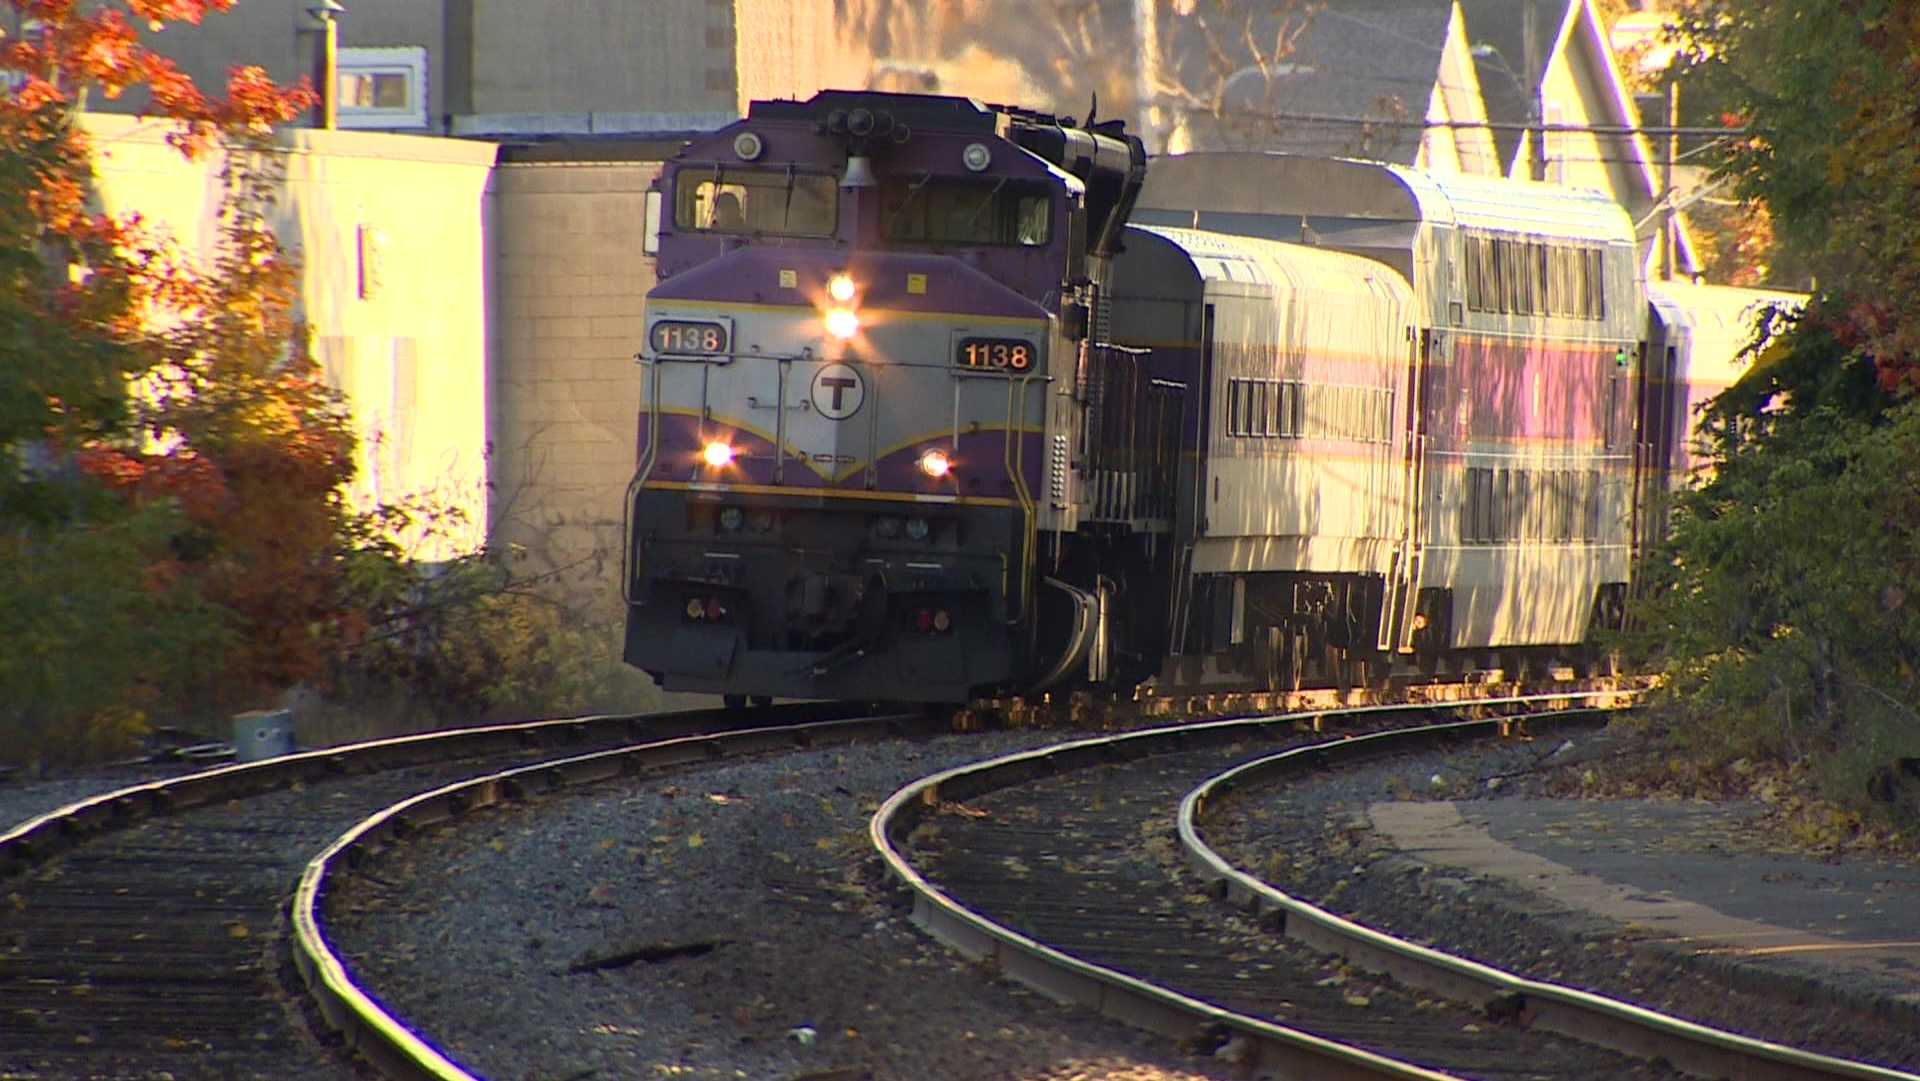 MBTA Commuter Rail Train